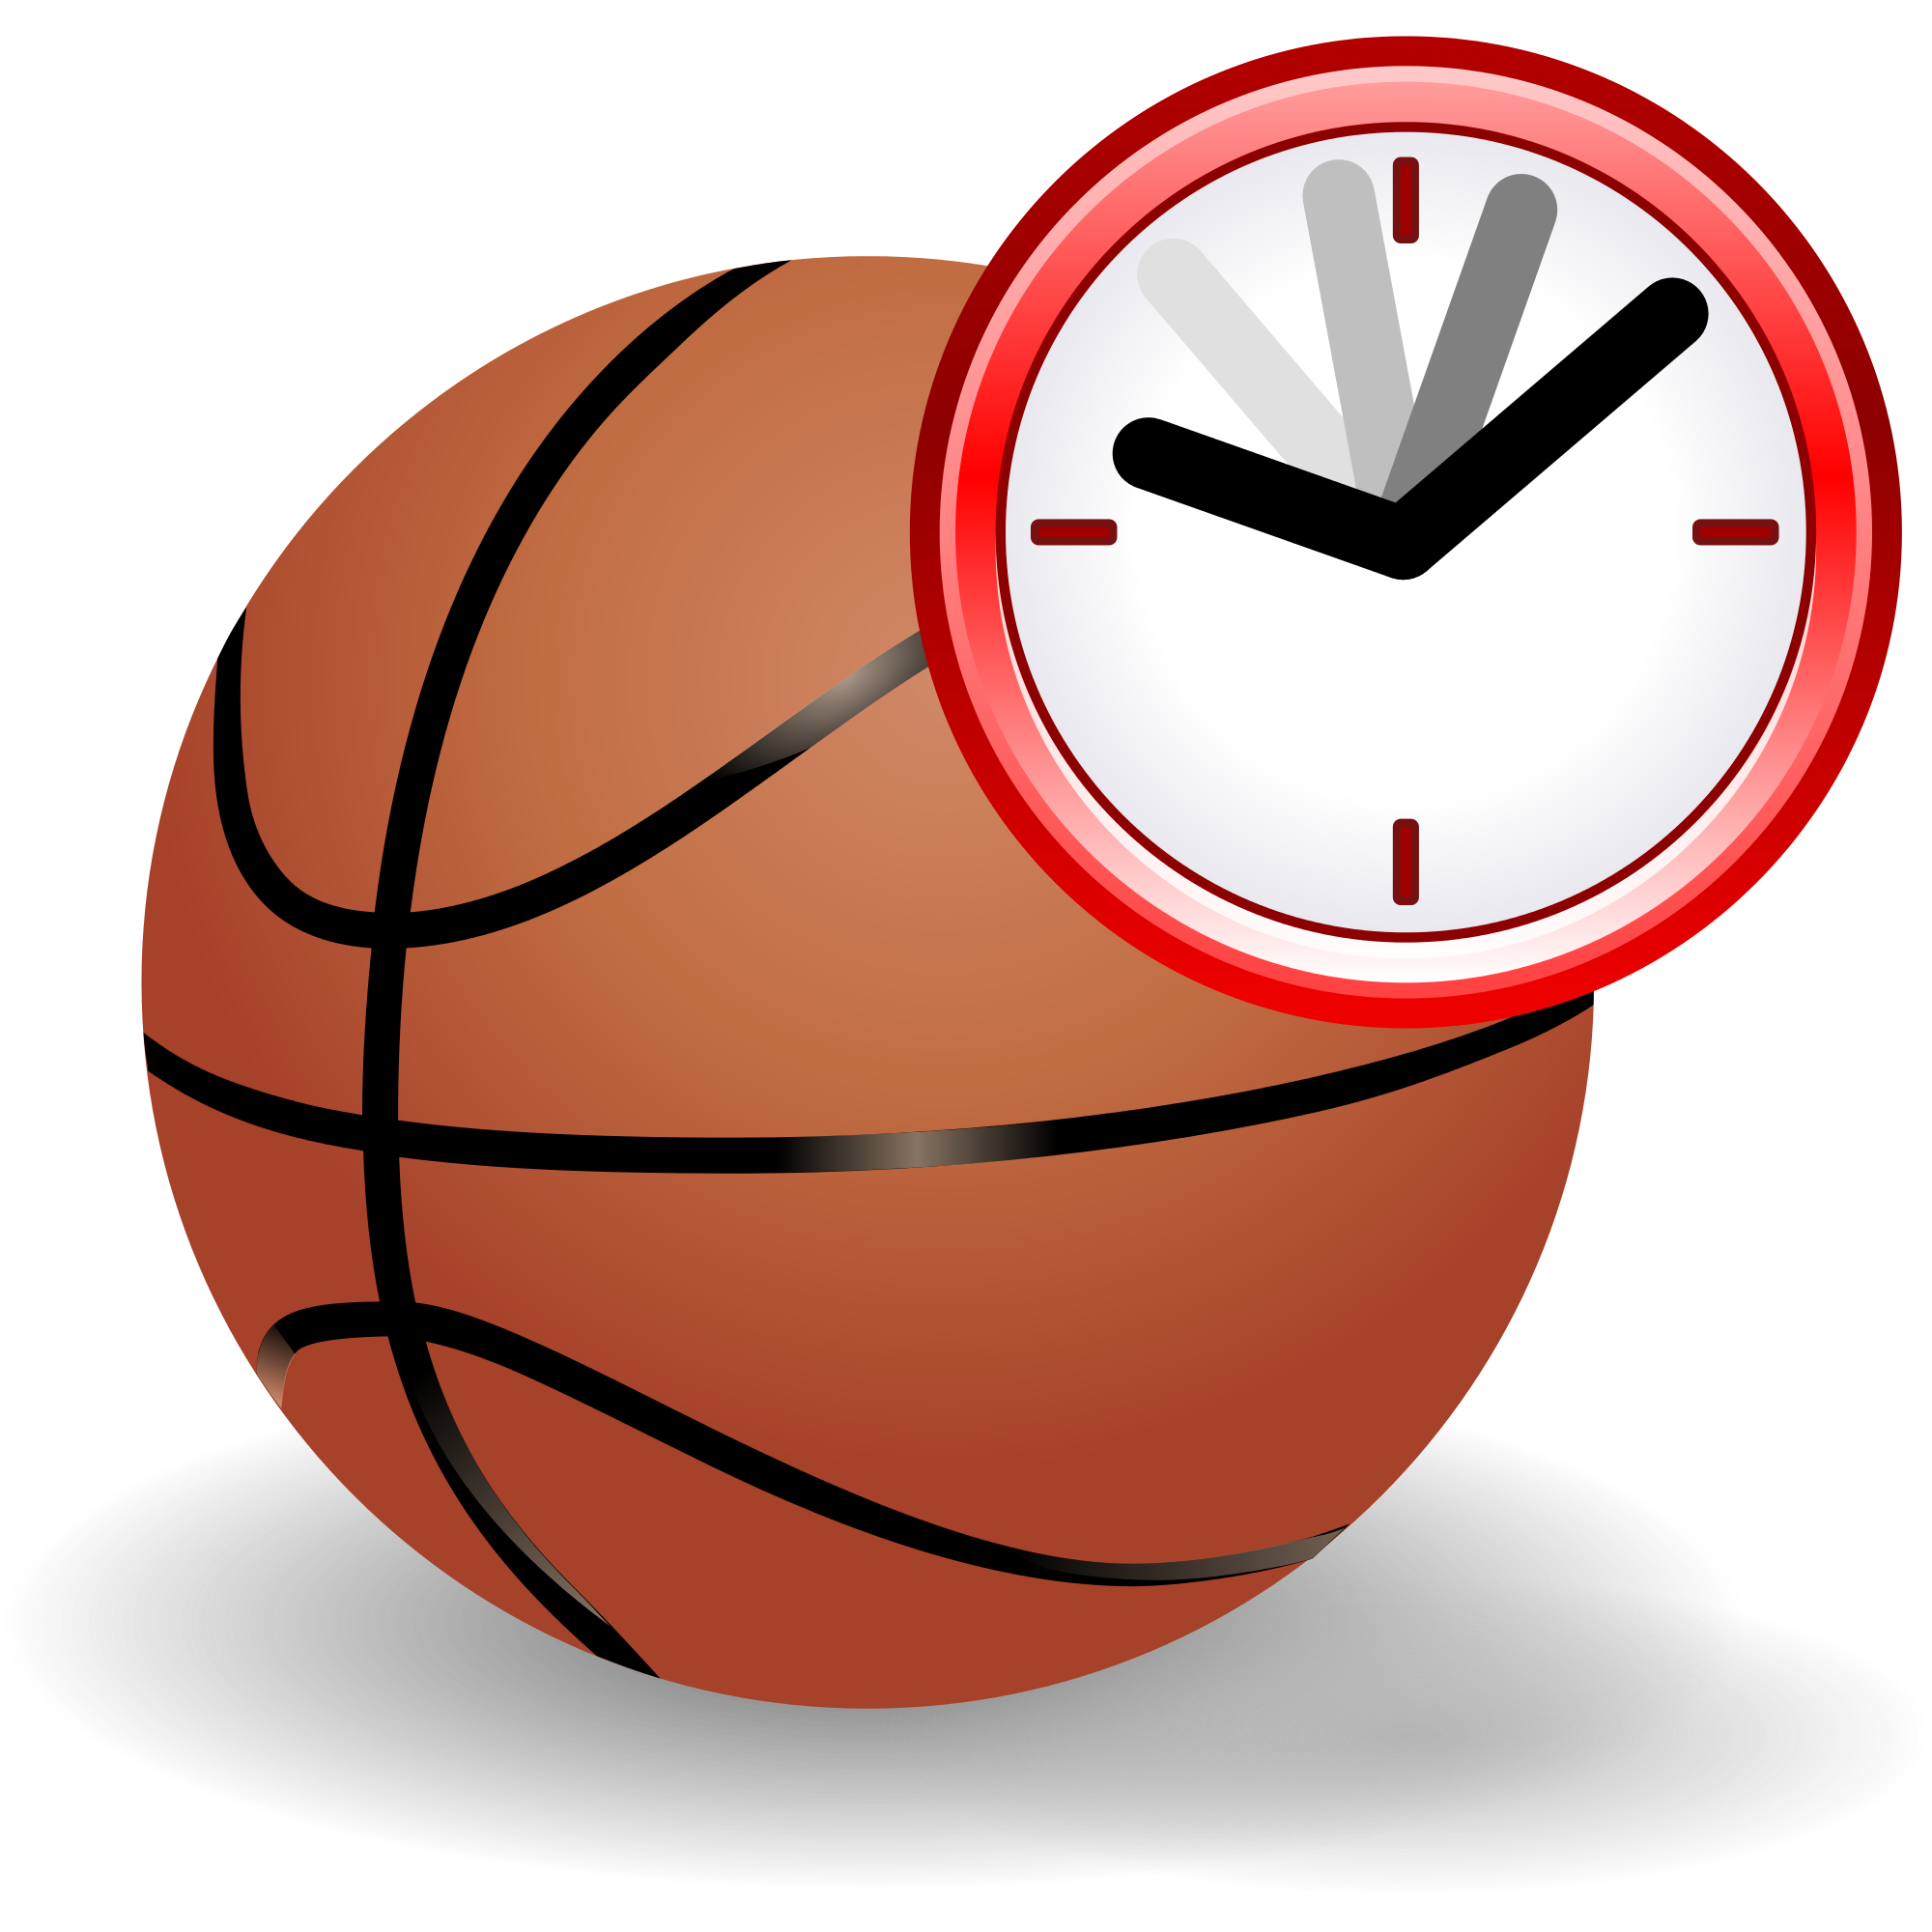 Suns basketball clipart png freeuse download File:Basketball current event.svg - Wikimedia Commons png freeuse download